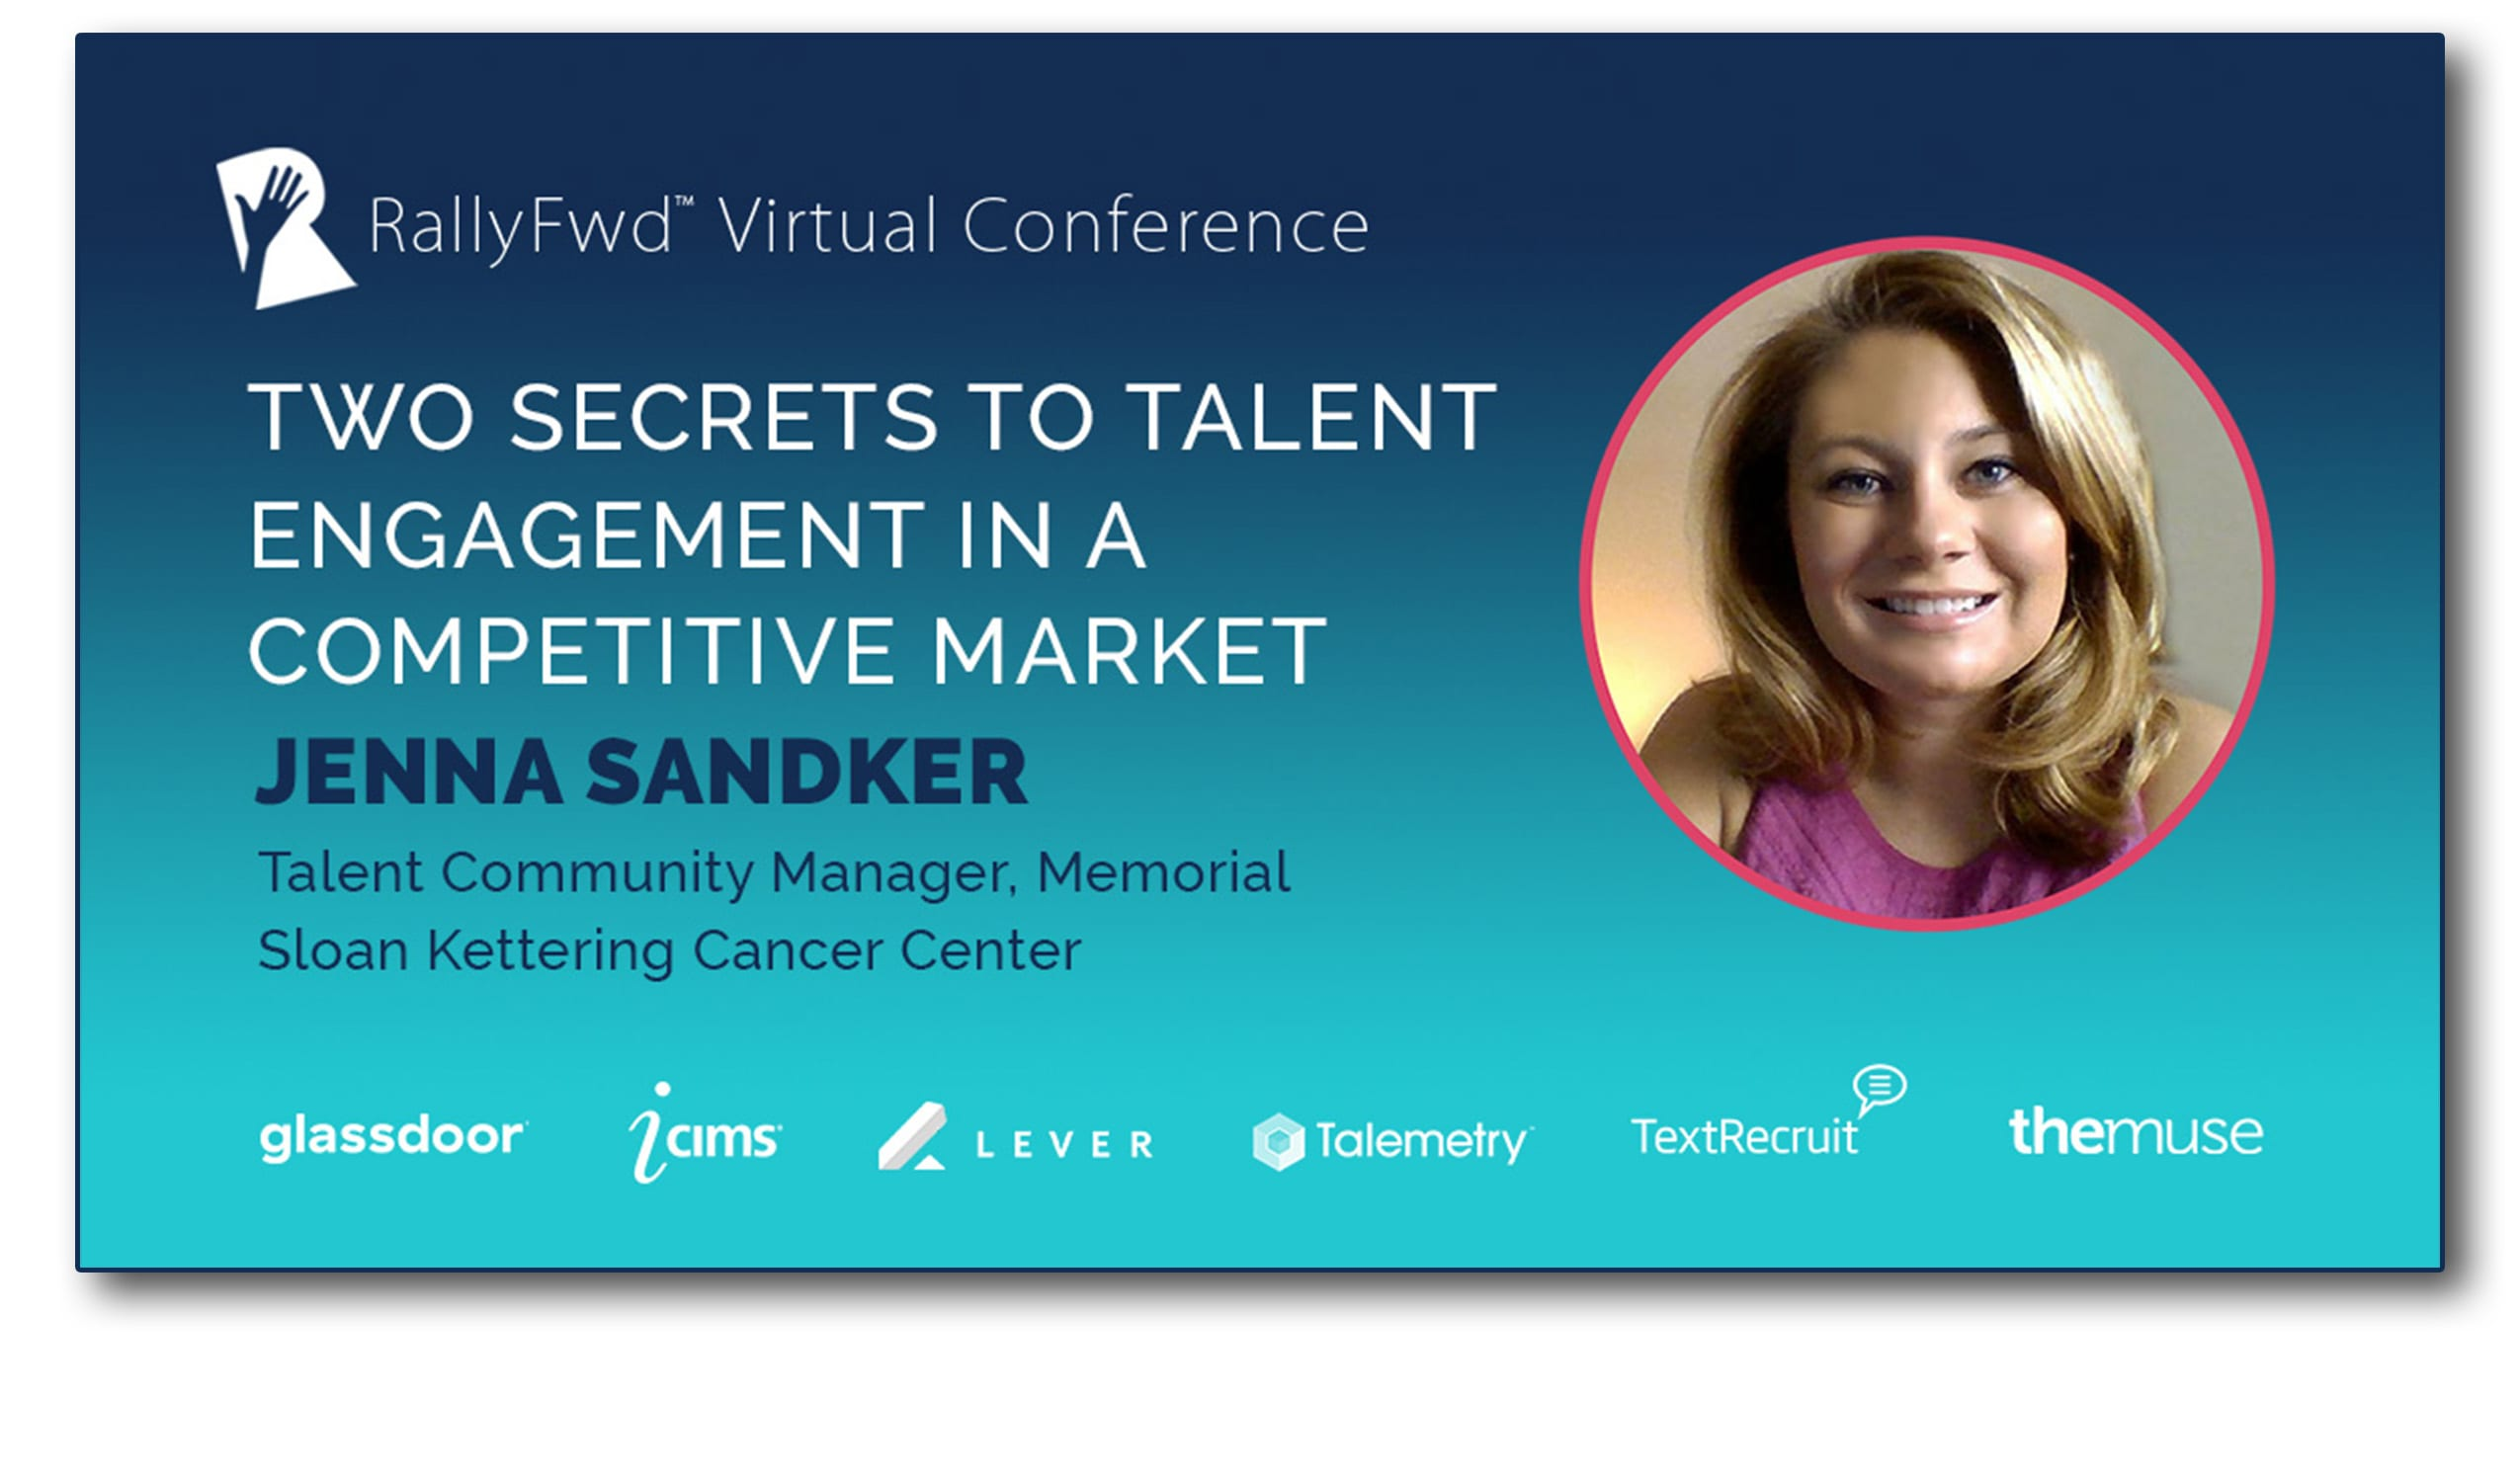 RallyFwd™ On Demand: Talent Engagement Secrets in a